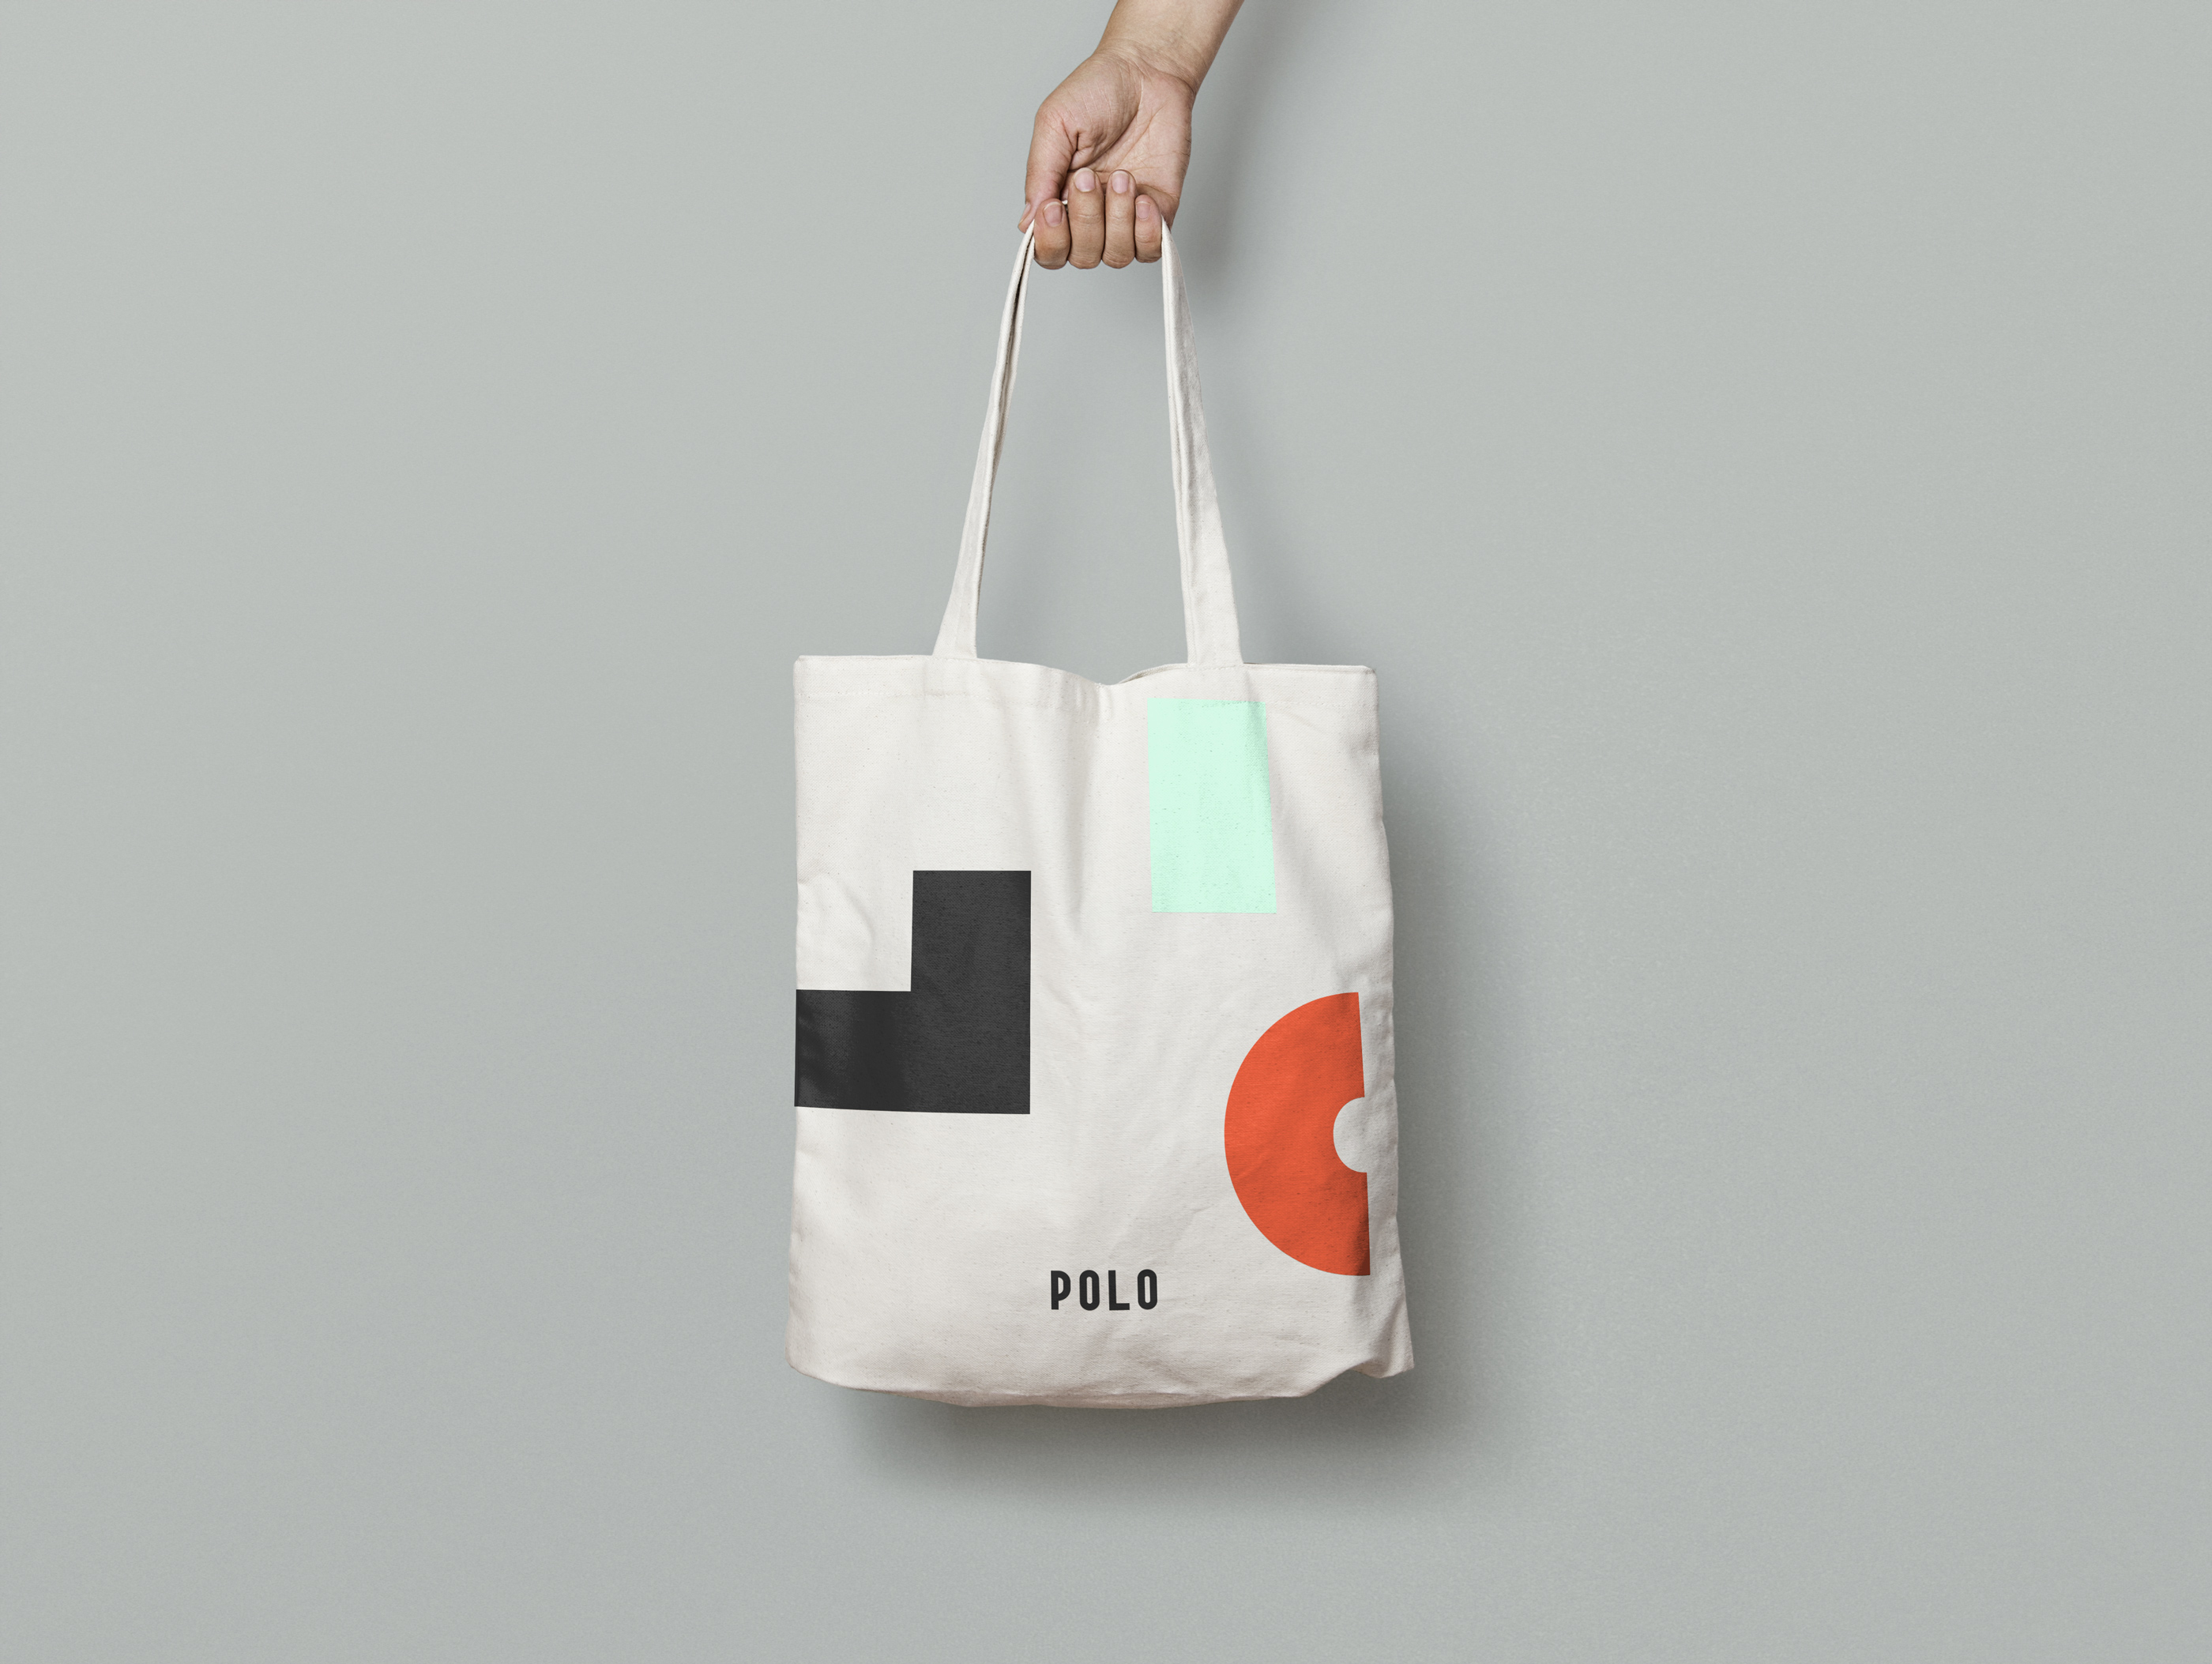 Polo Branding by The Woork Co